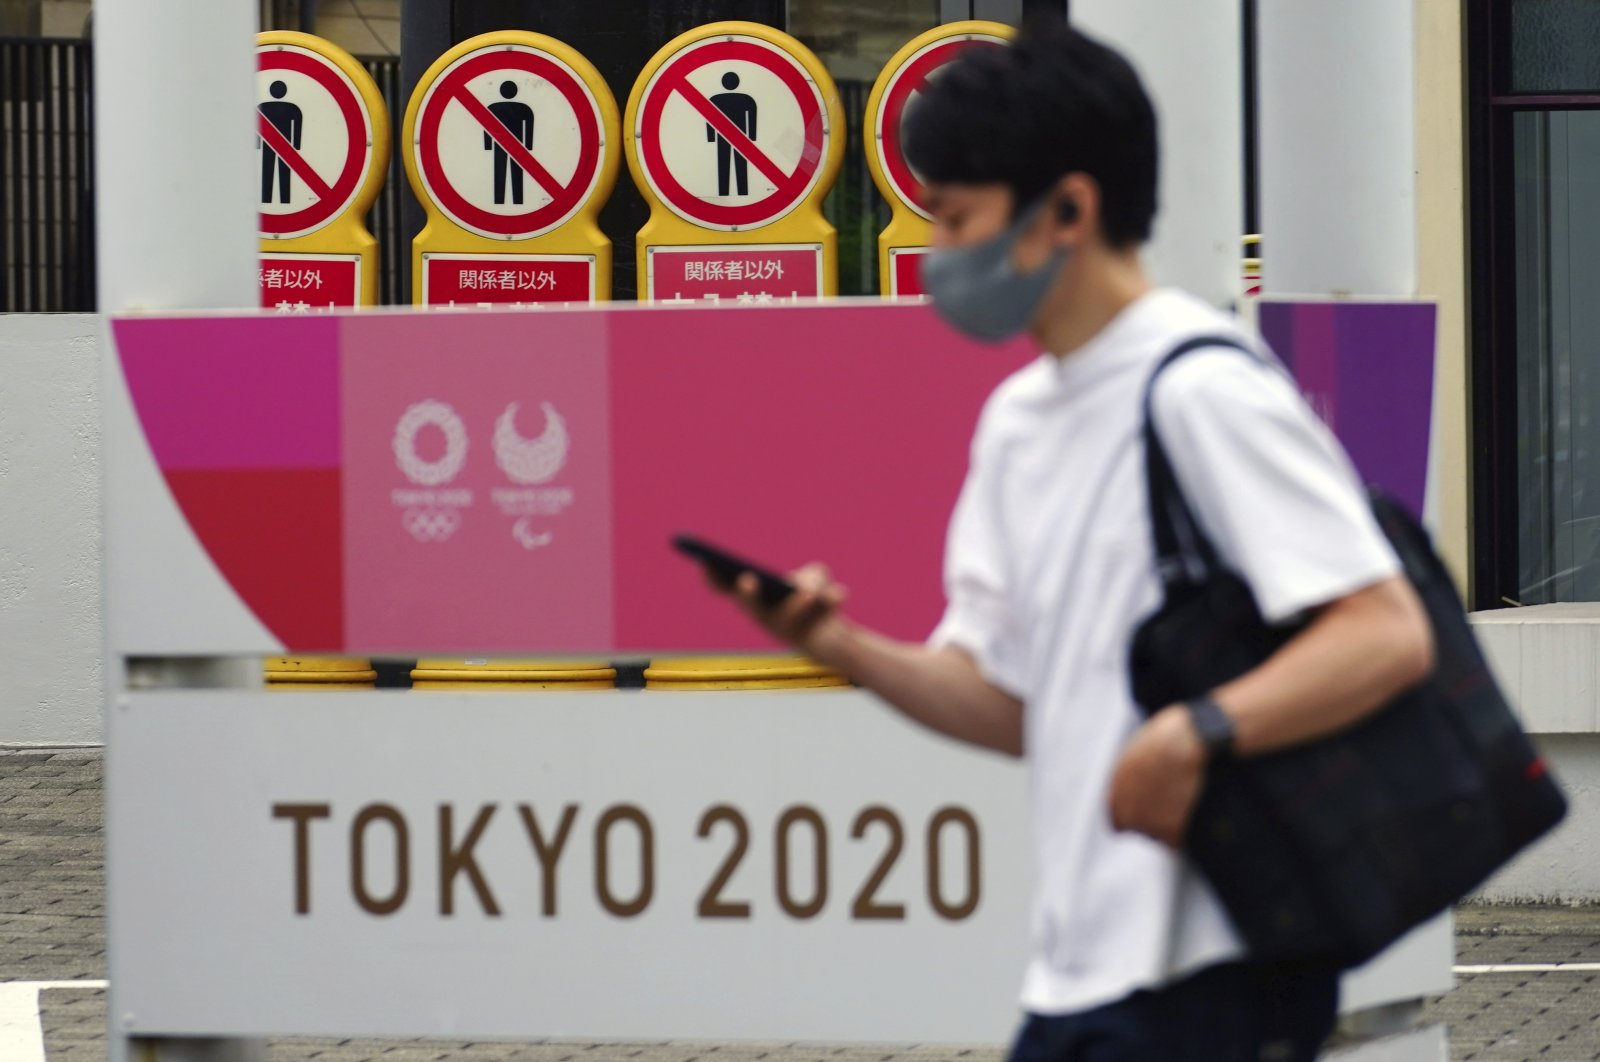 A man in a protective mask against the coronavirus walks past a Tokyo 2020 Olympic and Paralympic Games banner, Tokyo, Japan, May 11, 2021. (AP Photo)